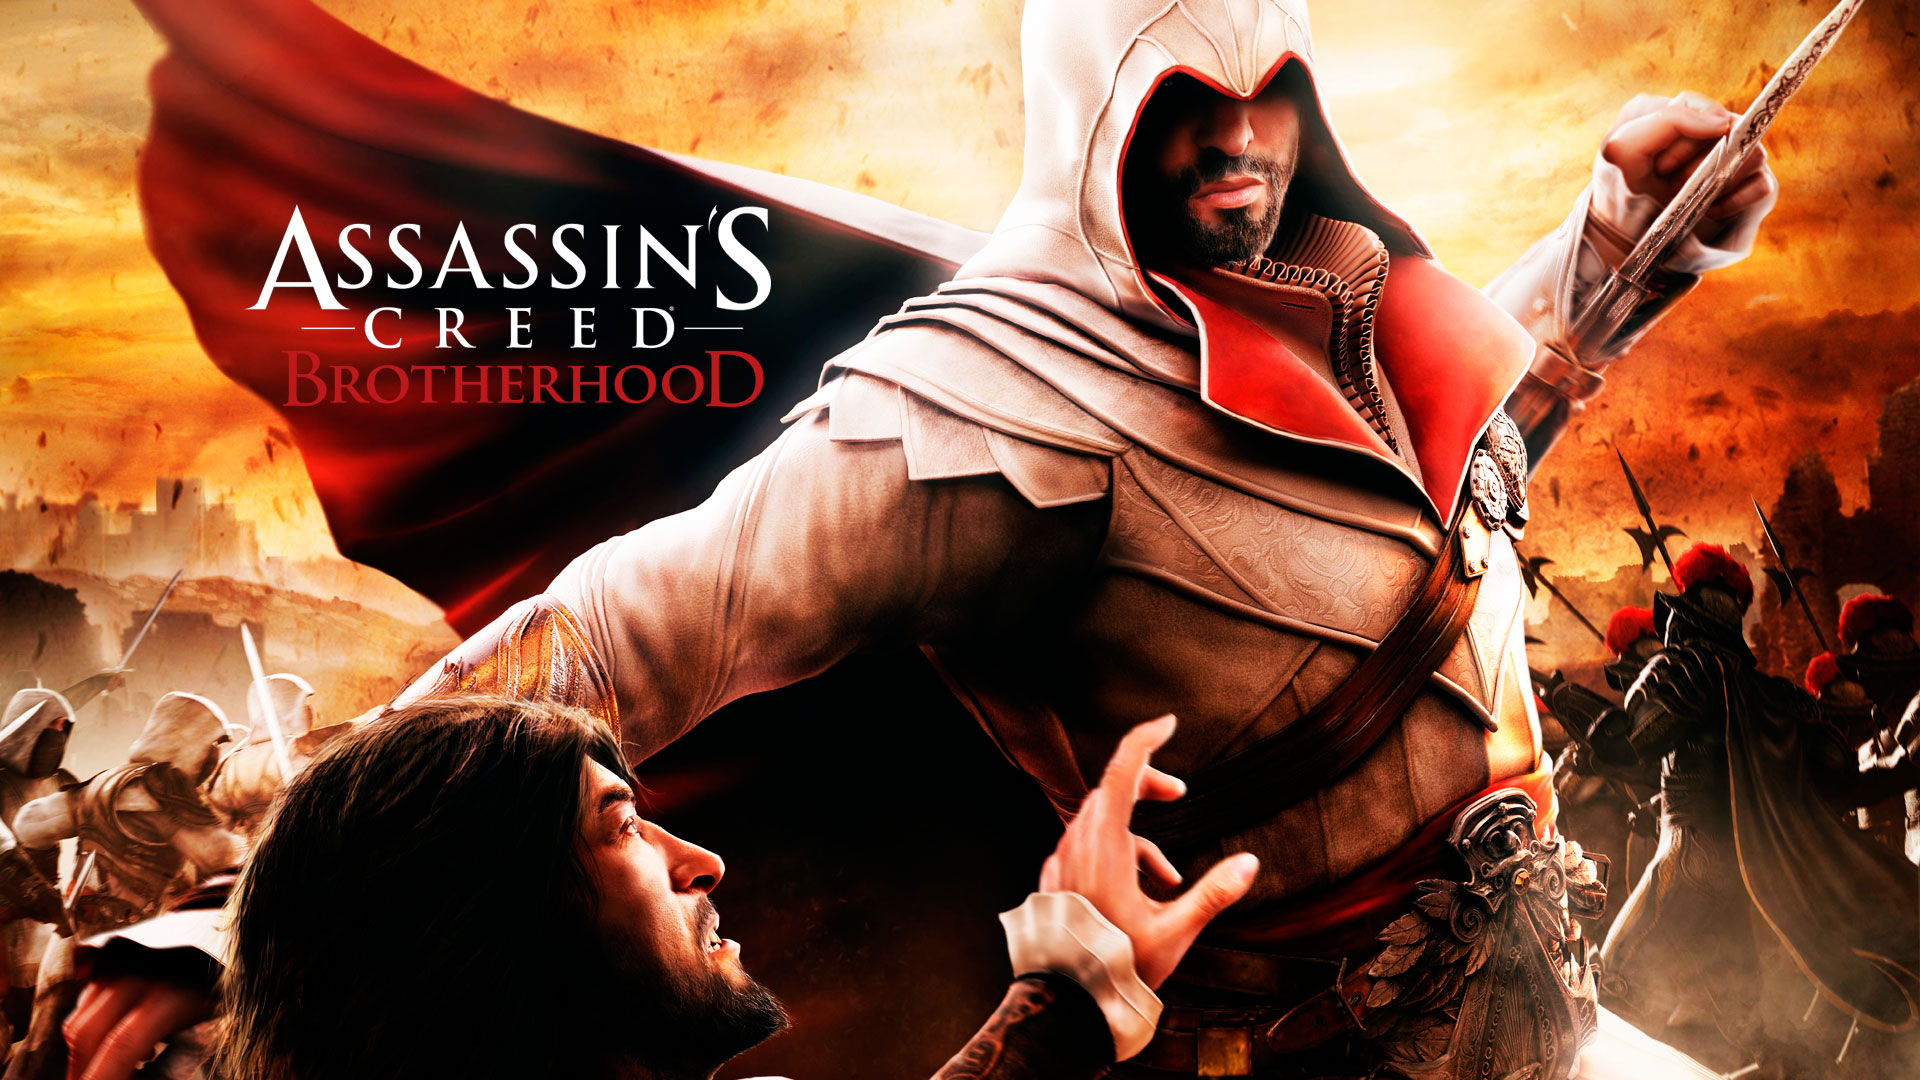 Assassin's Creed Brotherhood 2011